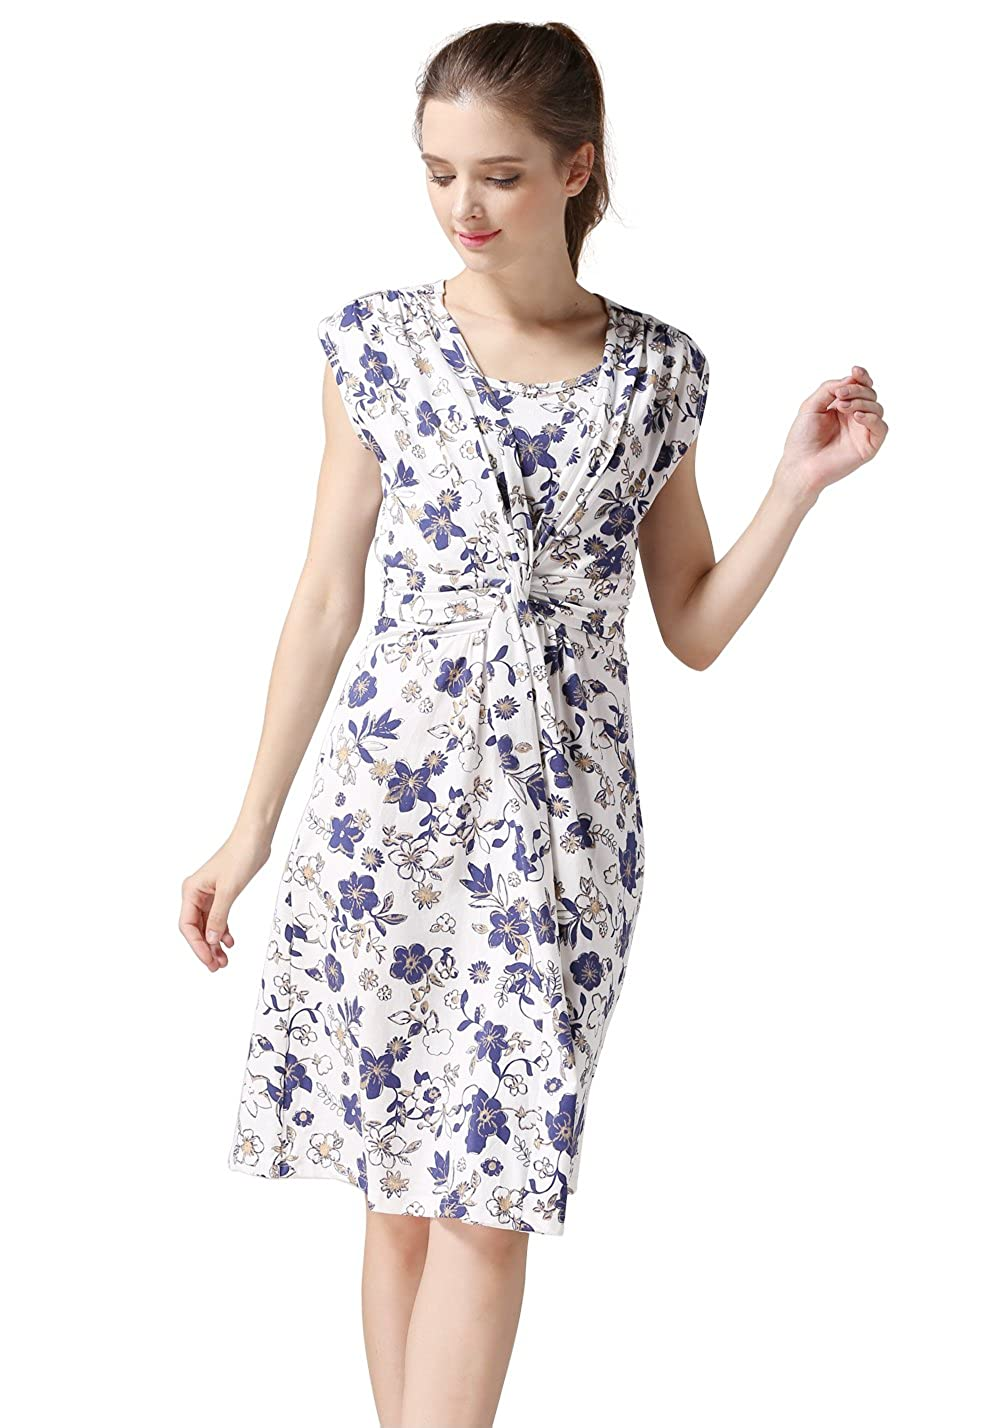 ed6a4cee7f3bb Emotion Moms Summer Flower Maternity Clothes Breastfeeding Nursing Dresses  for Pregnant Women at Amazon Women's Clothing store: